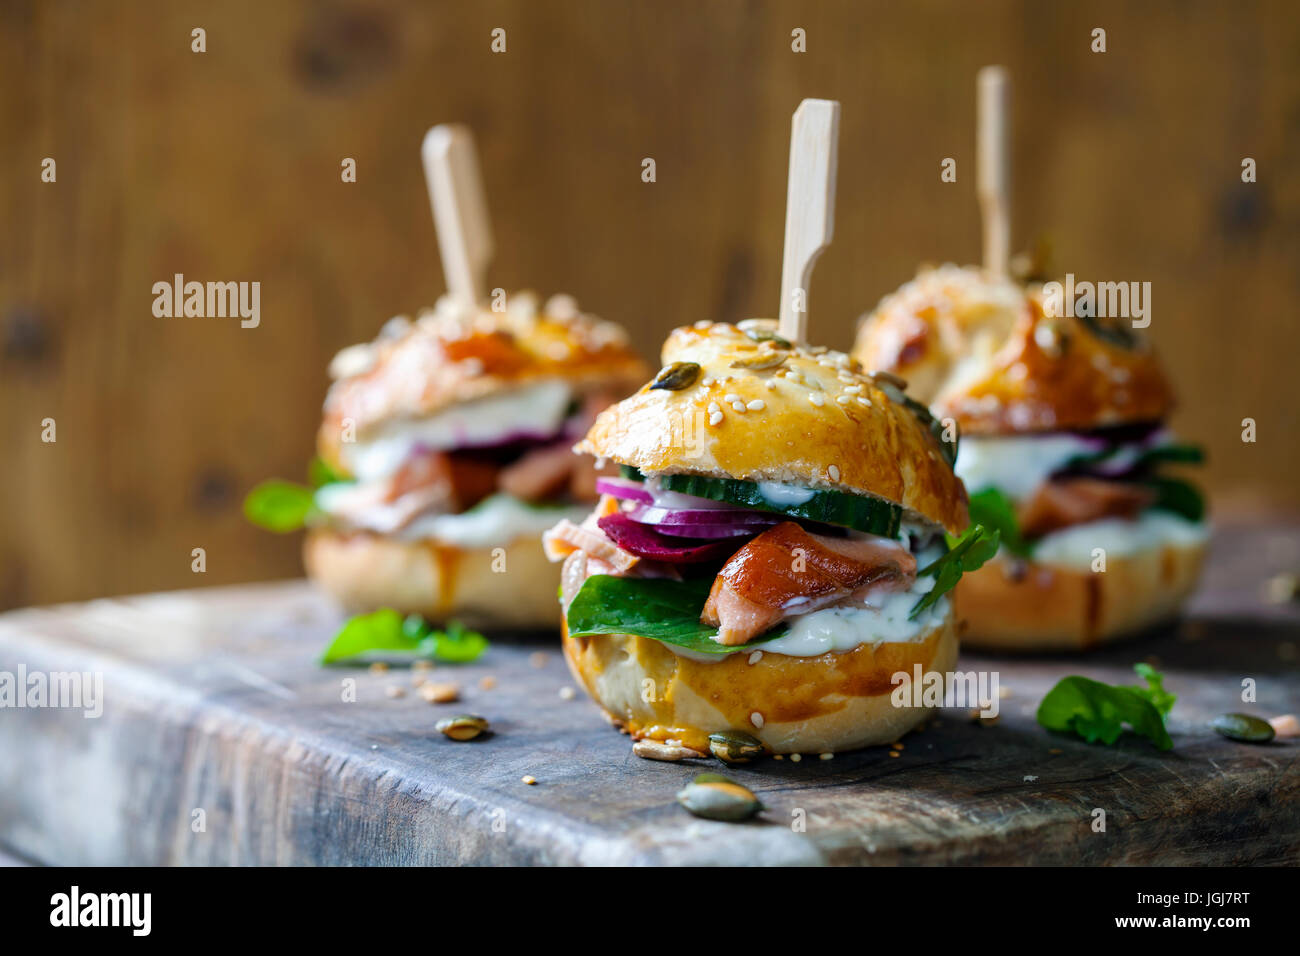 Seeded brioche buns with hot smoked salmon, beetroot and rocket salad - Stock Image